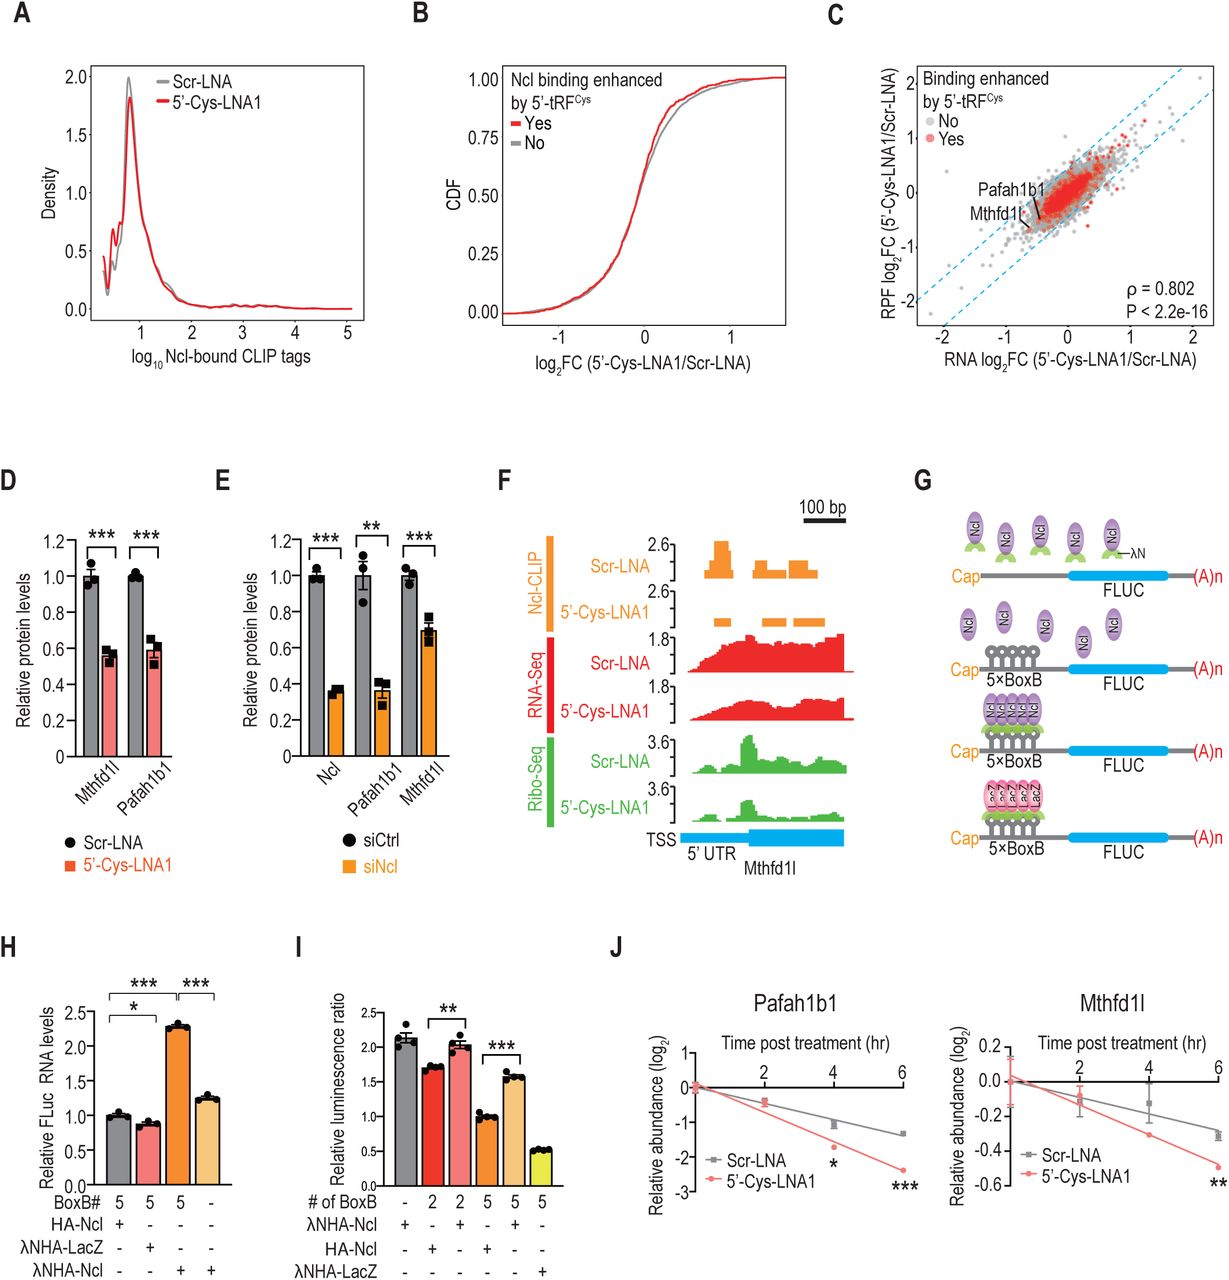 5'-tRF Cys promotes Nucleolin binding to its target transcripts to enhance their stability. A. Quantification of rRNA levels upon inhibition of 5'-tRF Cys by RT-qPCR. B. Representative polysome profiles showing global translation status in 4T1 cells upon inhibition of 5'-tRF Cys . Mono, monosomes. Di, disomes. C. Percentage of Nucleolin peaks in different types of <t>RNAs.</t> RMSK, repeat masked RNAs. D. The number of Nucleolin-bound CLIP peaks in 5', 3' untranslated region (UTR) or coding sequencing (CDS) per 10 kb in the mouse genome. E. Cumulative distribution function (CDF) plots of log 2 FC in transcript abundance for all transcripts stratified by whether they were bound by Nucleolin (red) or not (grey). Statistical significance was determined by Kolmogorov–Smirnov (KS) test (P = 4.8e-13). F. Scatter plot comparing log 2 FC in transcript abundance upon inhibition of 5'-tRF Cys with two distinct 5'-tRF Cys antisense LNAs. Statistically significantly changed genes are marked in red. The blue dashed line represents the linear regression line for all data points. ρ, Spearman's correlation coefficient. G. Scatter plot comparing log 2 FC in protein abundance and log 2 FC in transcript abundance between 5'-tRF Cys suppressed and control cells for all transcripts stratified by whether their Nucleolin binding is enhanced by 5'-tRF Cys (red) or not (grey). The blue dashed line represents the linear regression line for all data points. ρ, Spearman's correlation coefficient. H, I. Representative western blot images of 5'-tRF Cys targets upon suppression of 5'-tRF Cys (H) or depletion of Nucleolin (I). J. Genome browser view of the aligned Nucleolin (Ncl)-CLIP tags (orange), <t>RNA-Seq</t> reads (red) and Ribo-Seq reads (green) within the 5' UTR of Pafah1b1. The Y axis represents reads per million (RPM). TSS, transcription start site. K. Quantification by dual luciferase assays of the luminescence signals of reporters containing 5' UTRs from 5'-tRF Cys targets relative to 